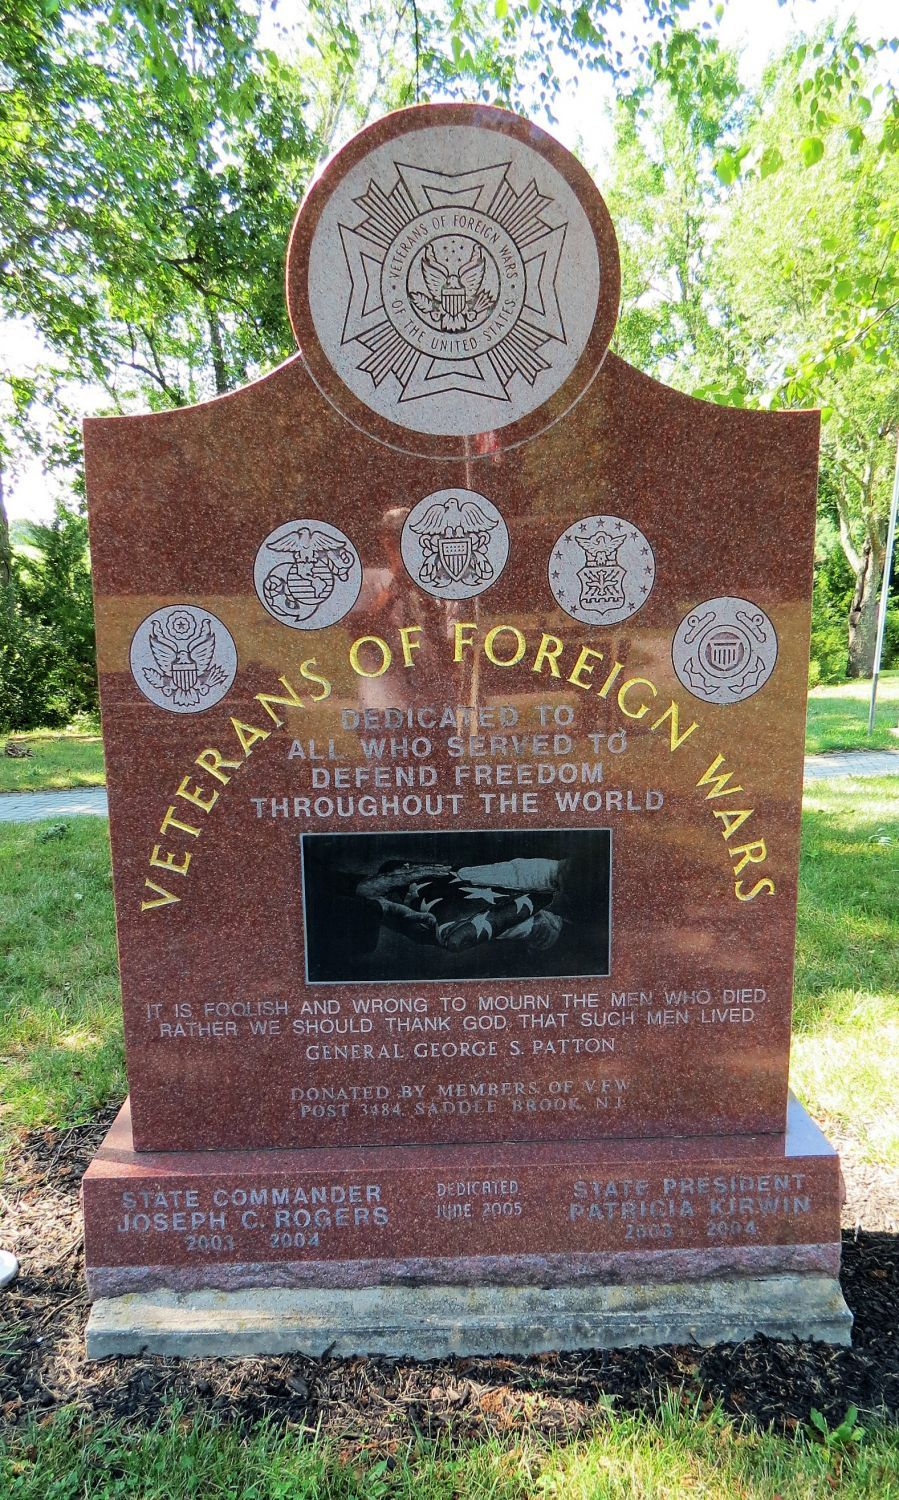 Veterans of Foreign Wars, Wrightstown, New Jersey